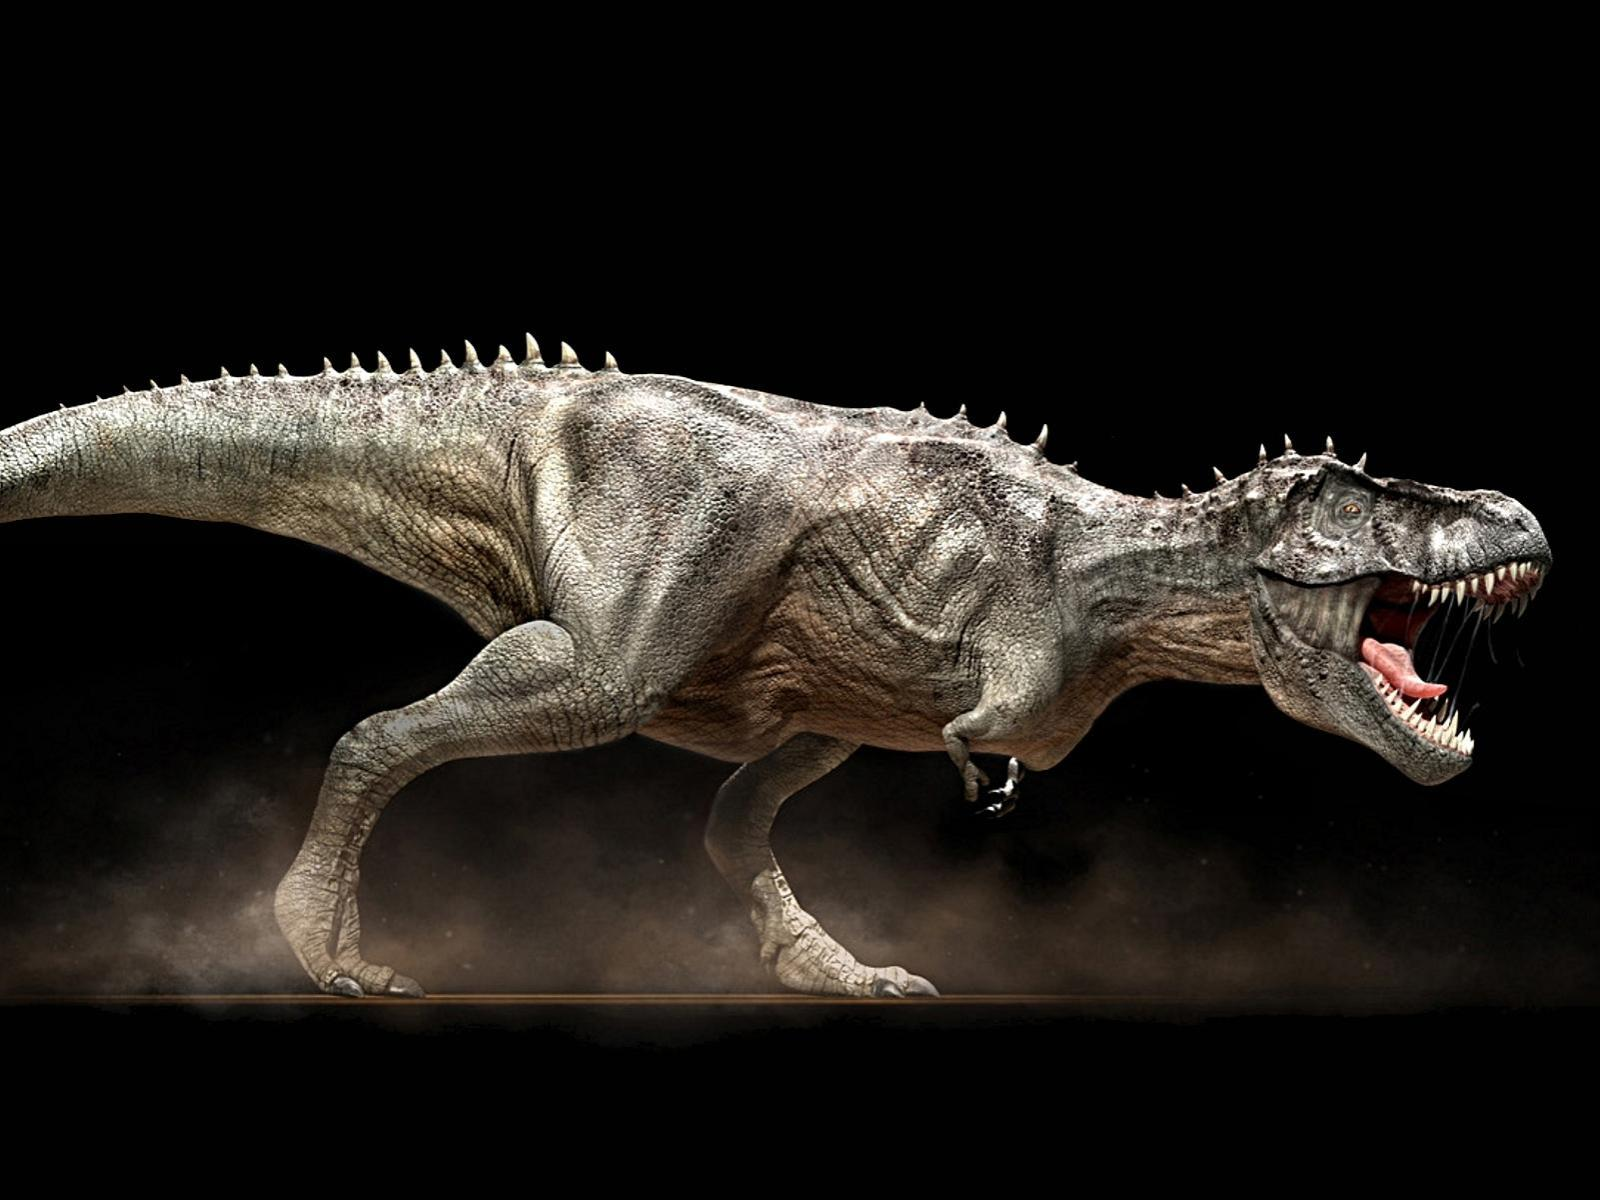 dinnosaur widescreen high definition pc backgrounds wallpaper